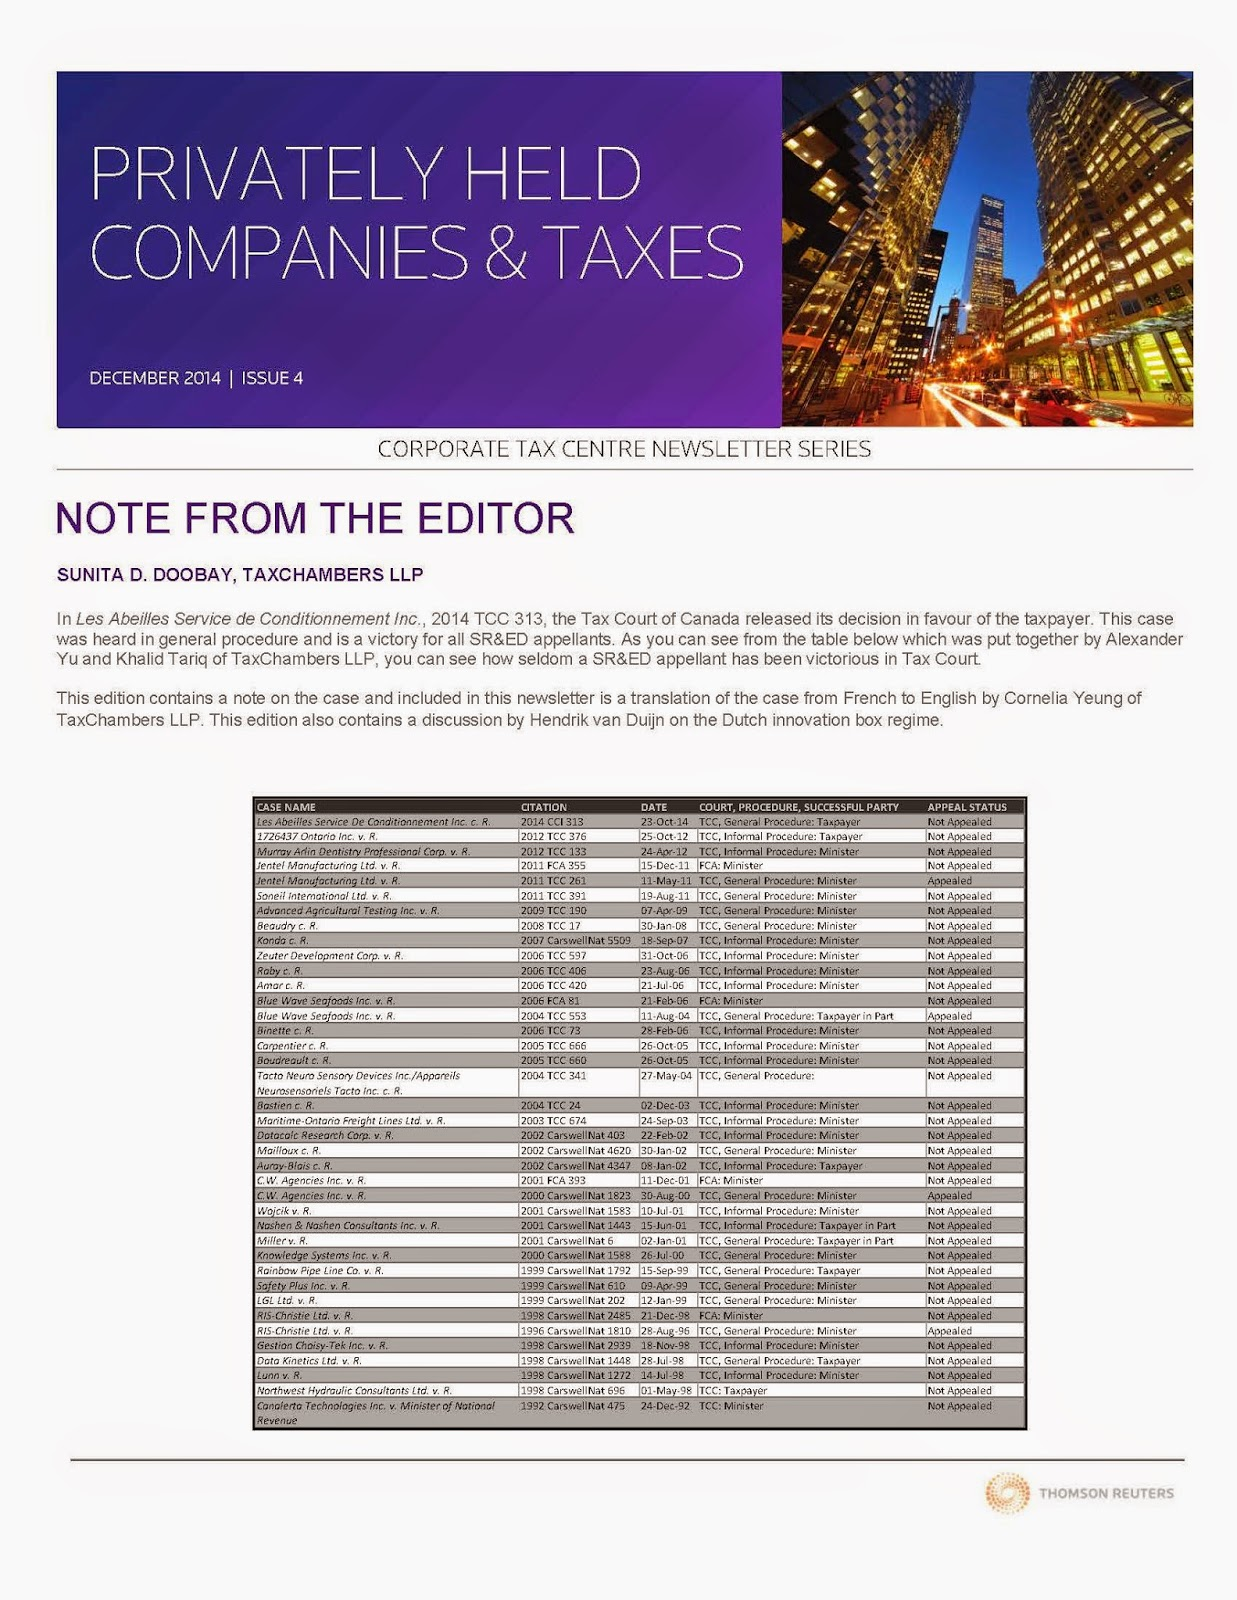 http://www.taxchambers.ca/wp-content/uploads/2015/01/NL_Privately-Held_01062015_1.pdf